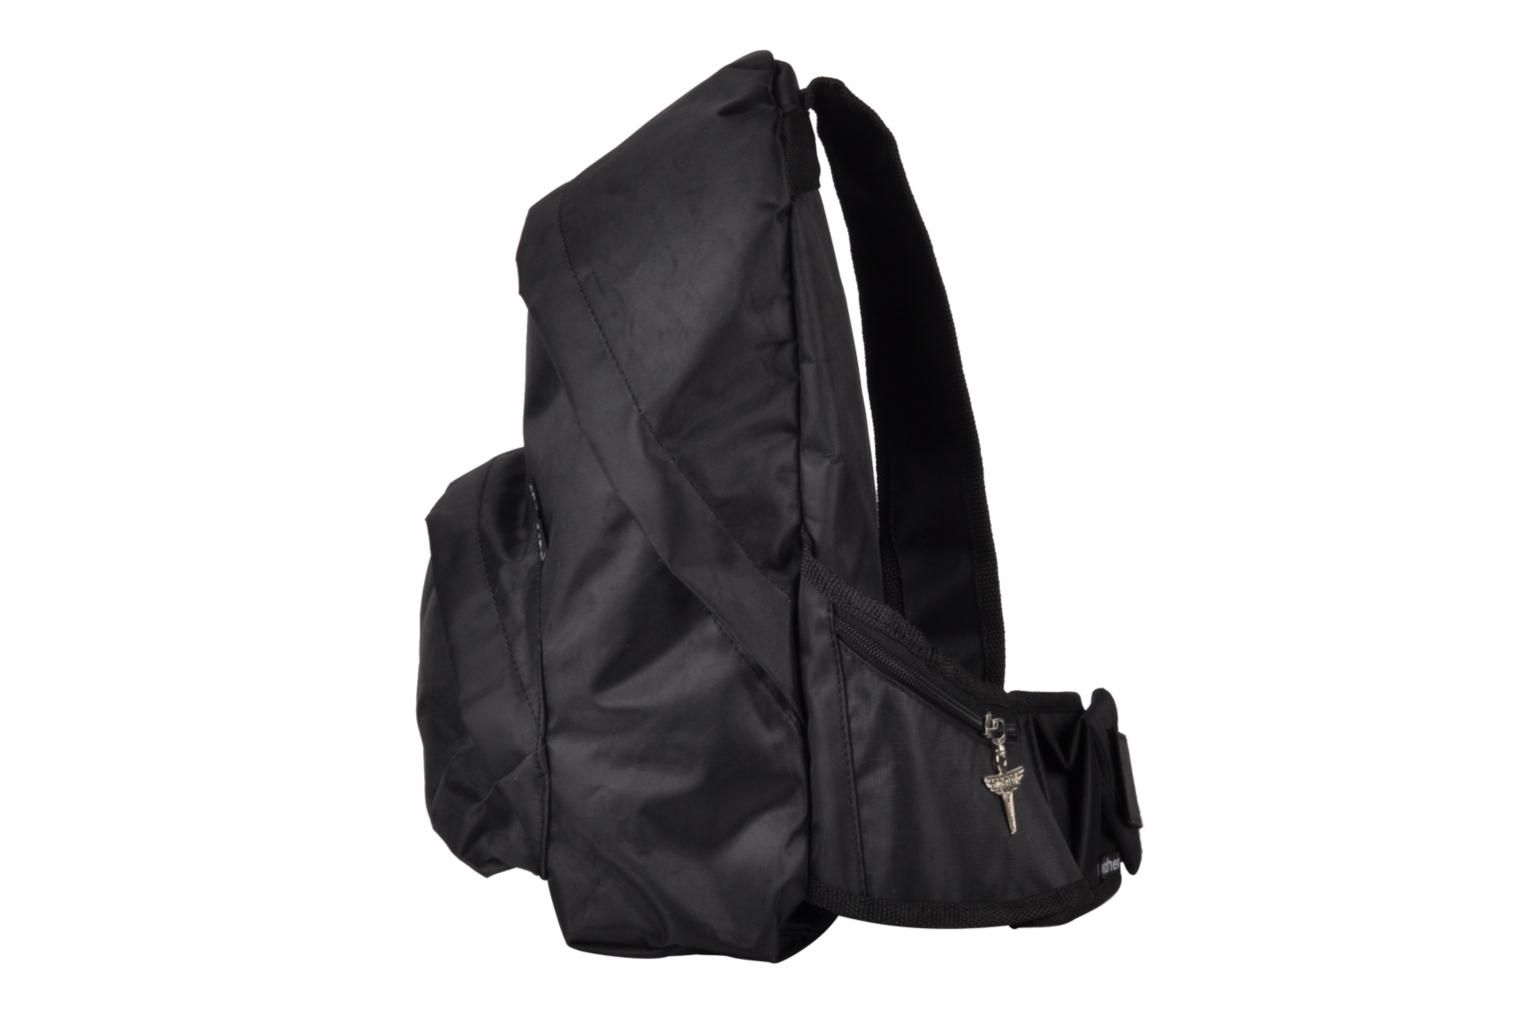 Rucksacks Viahero Pilot Bag Black model view